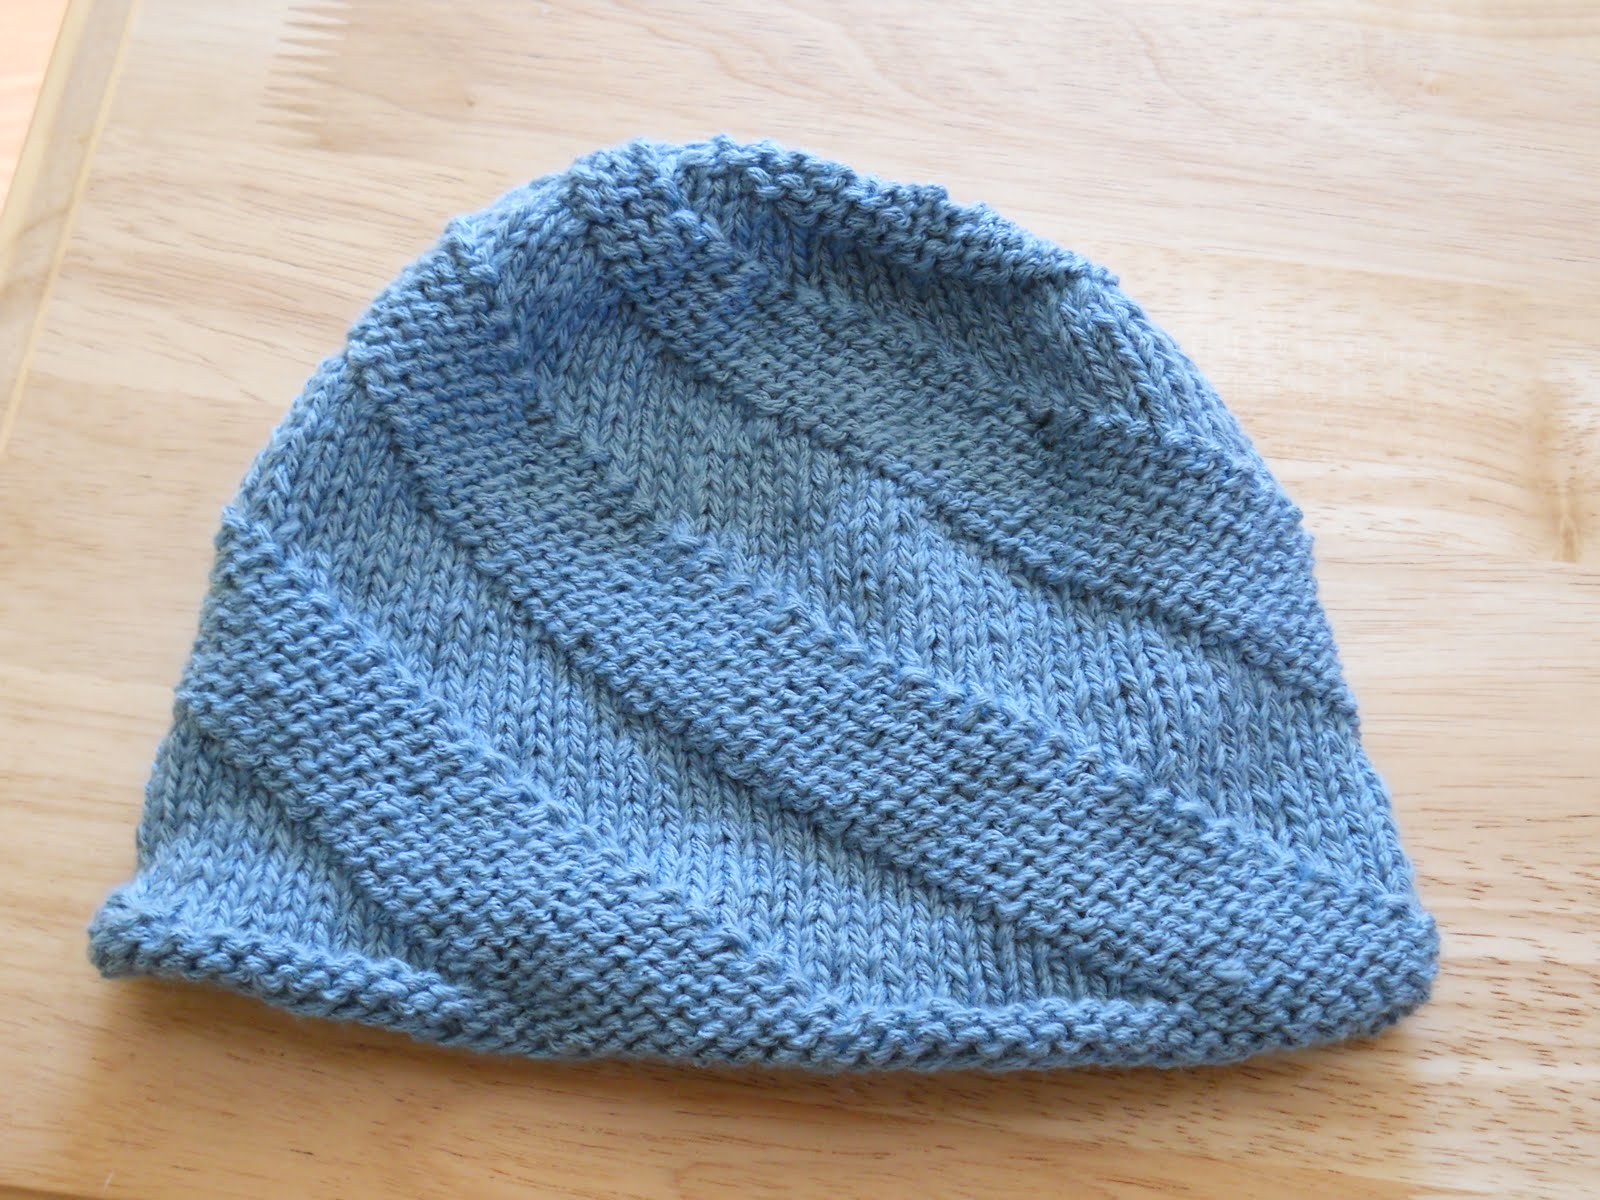 Knitting with Schnapps: April 2011